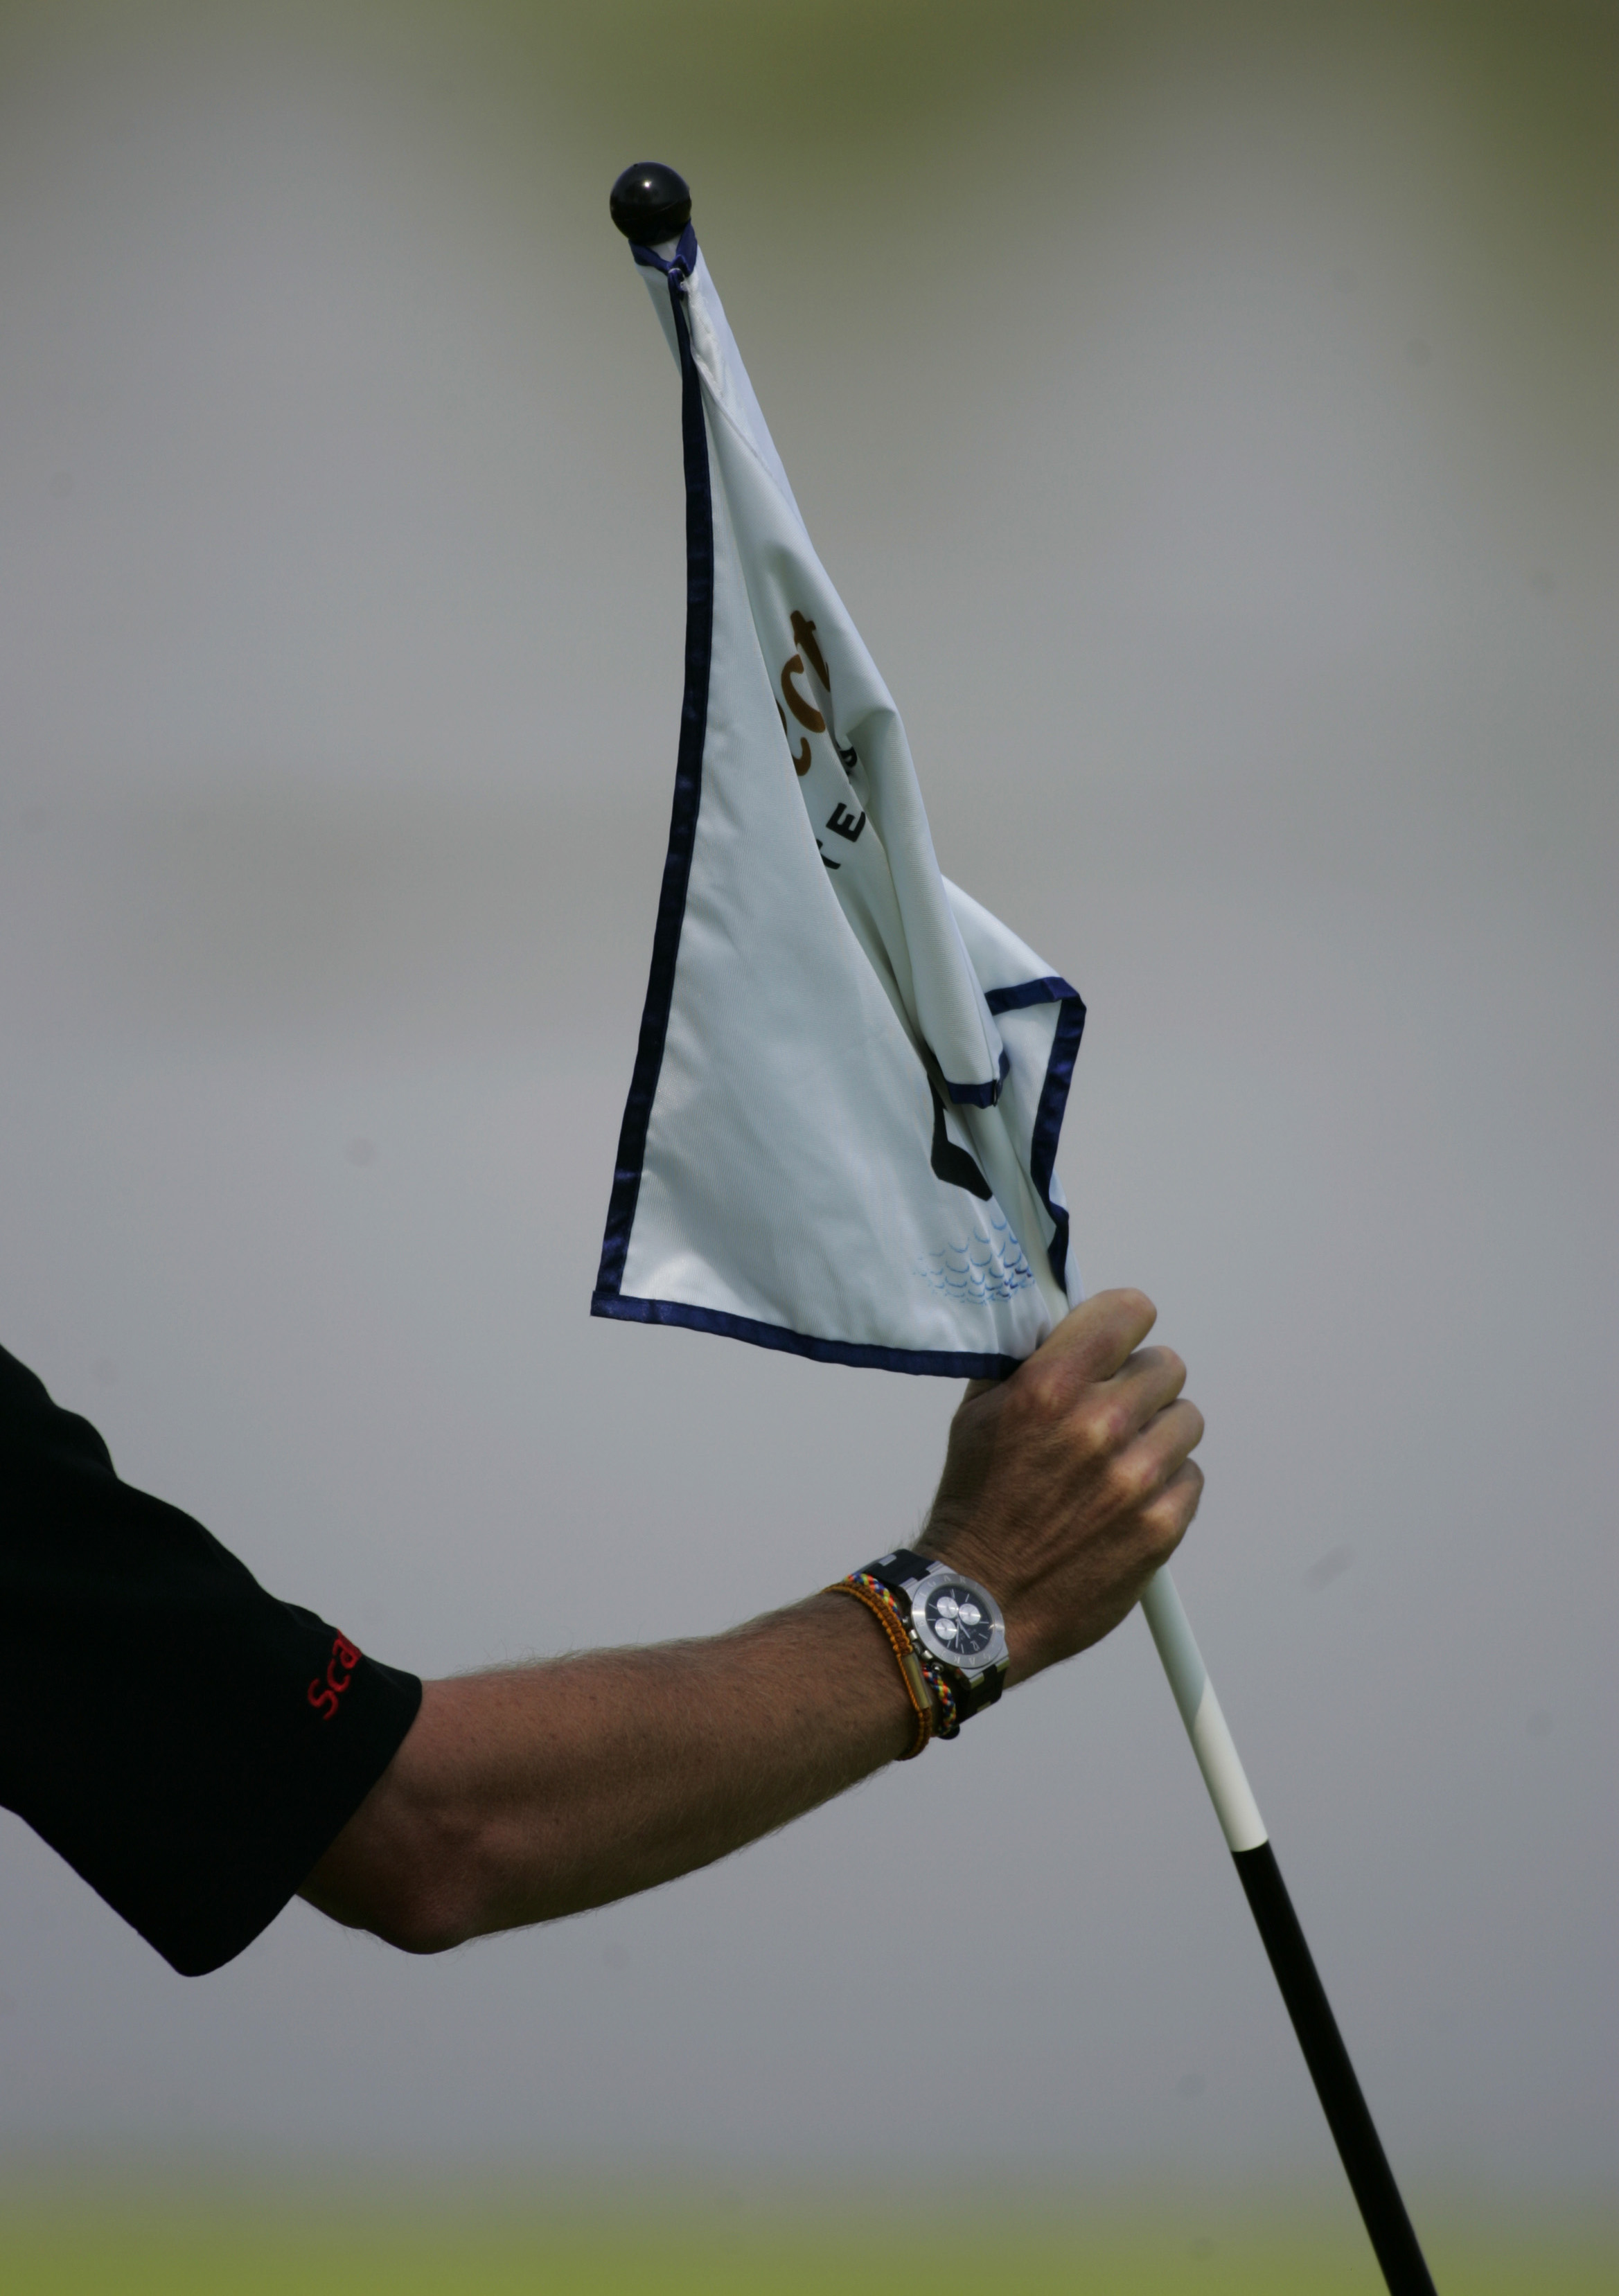 Rule 17-2: If an opponent or competitor attends, removes or holds up the flagstick during the stroke and might influence the ball's movement then they incur a penalty